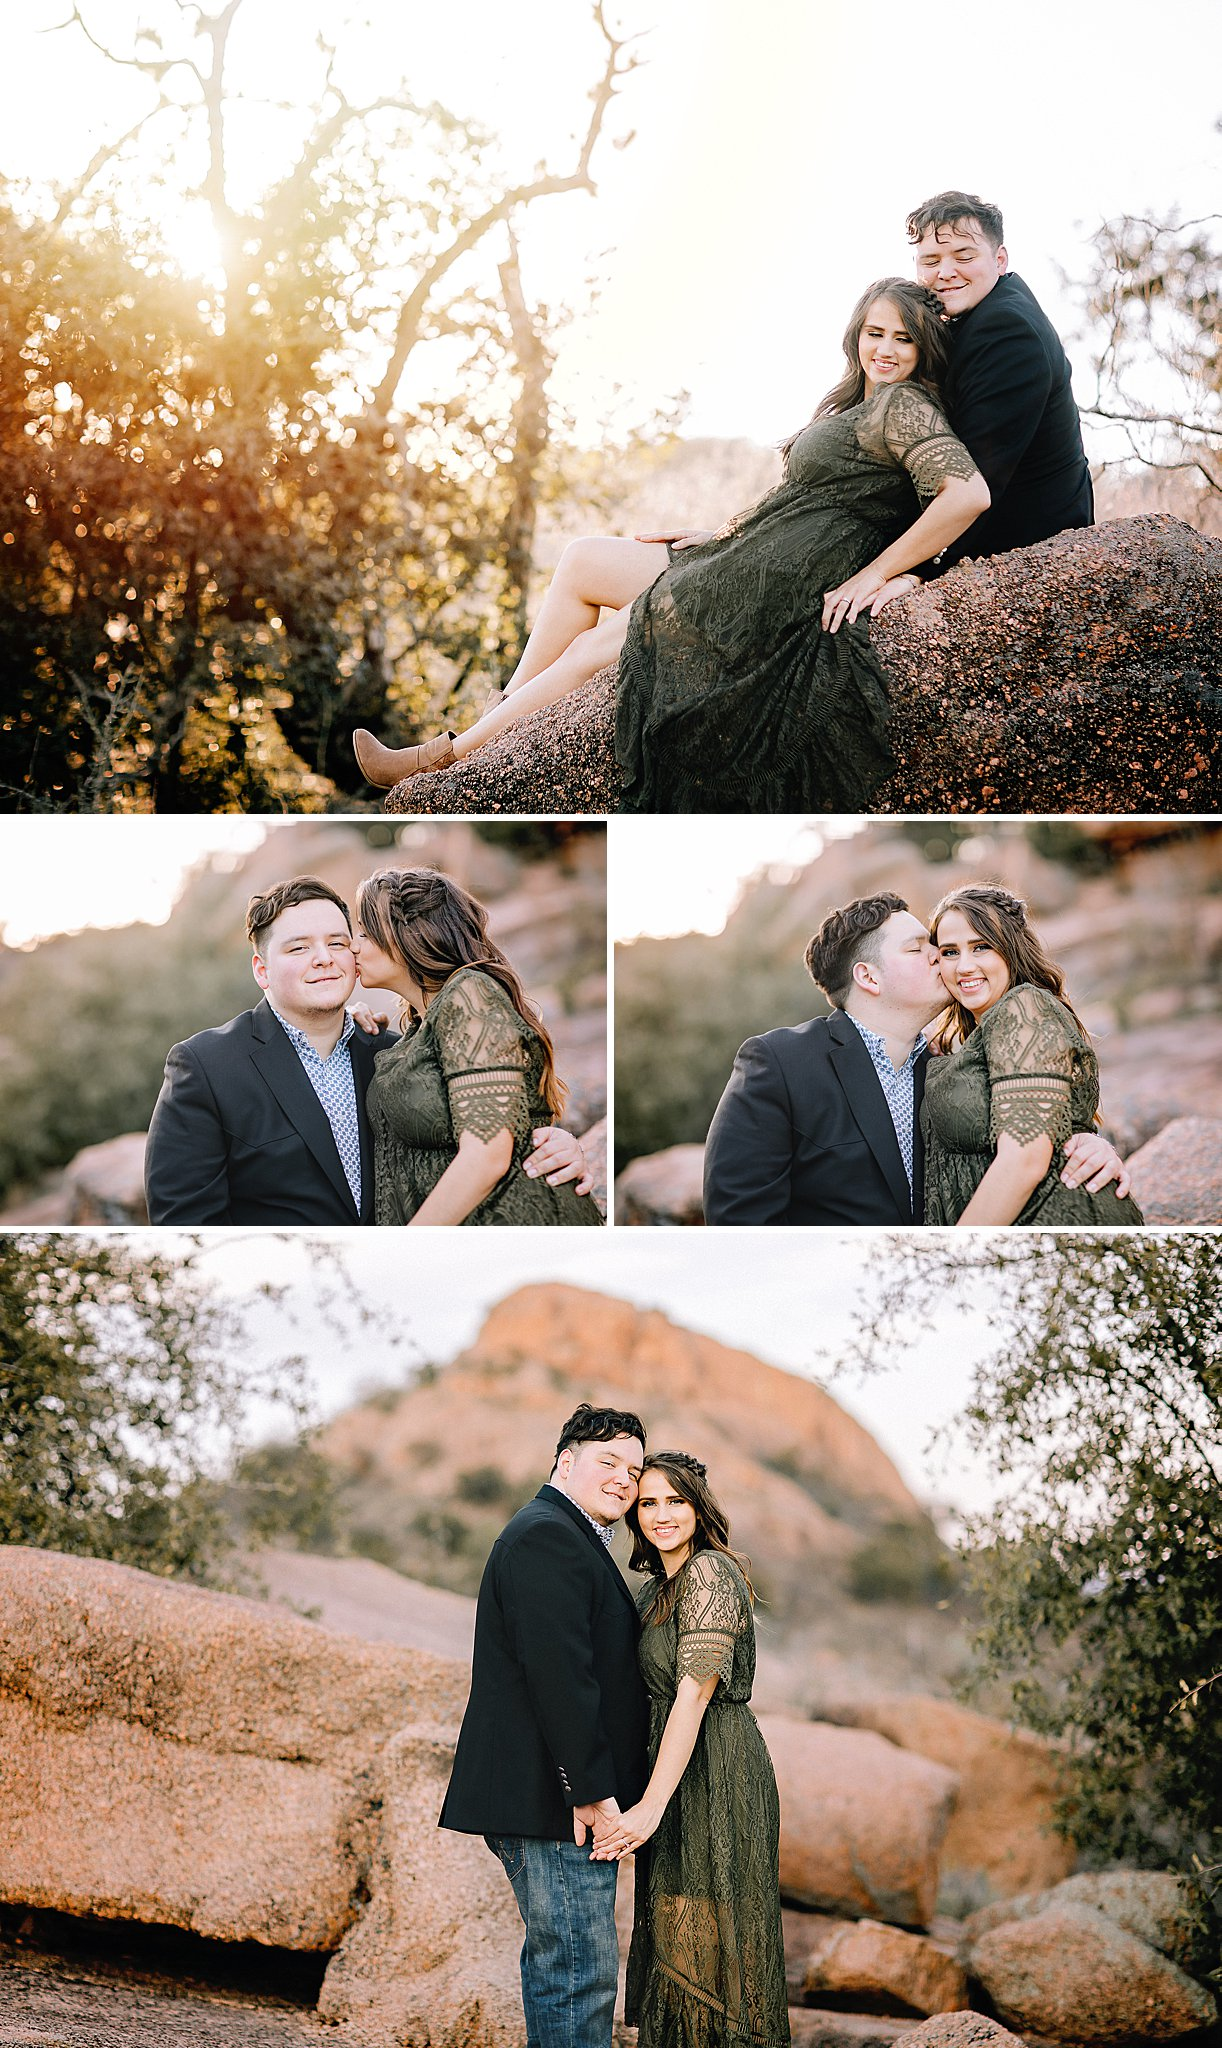 Carly-Barton-Photography-Fredericksburg-Texas-Engagement-Session-Enchanted-Rock-Photos_0015.jpg